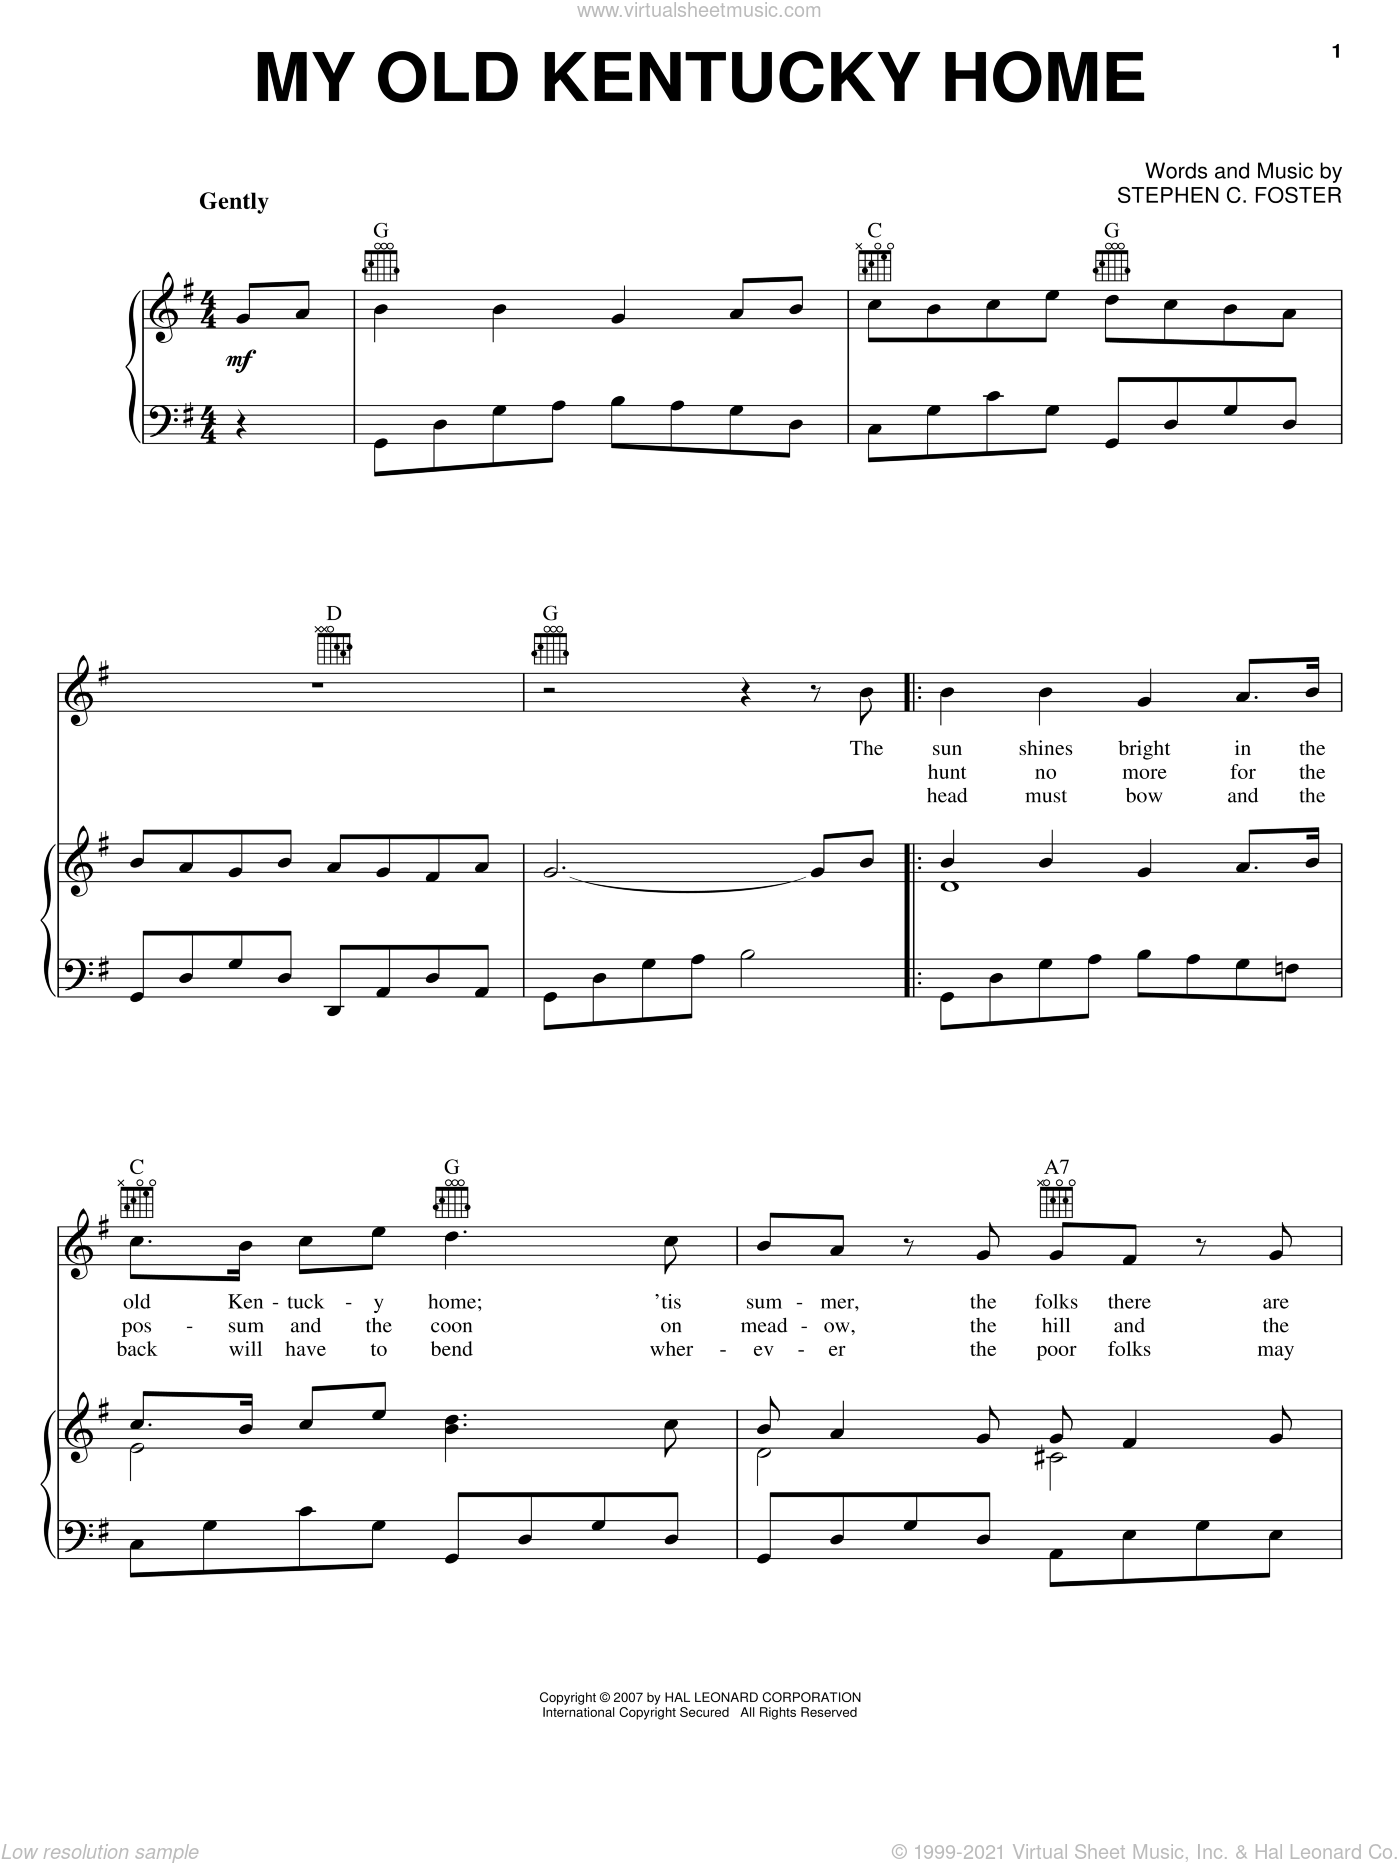 My Old Kentucky Home sheet music for voice, piano or guitar by Stephen Foster